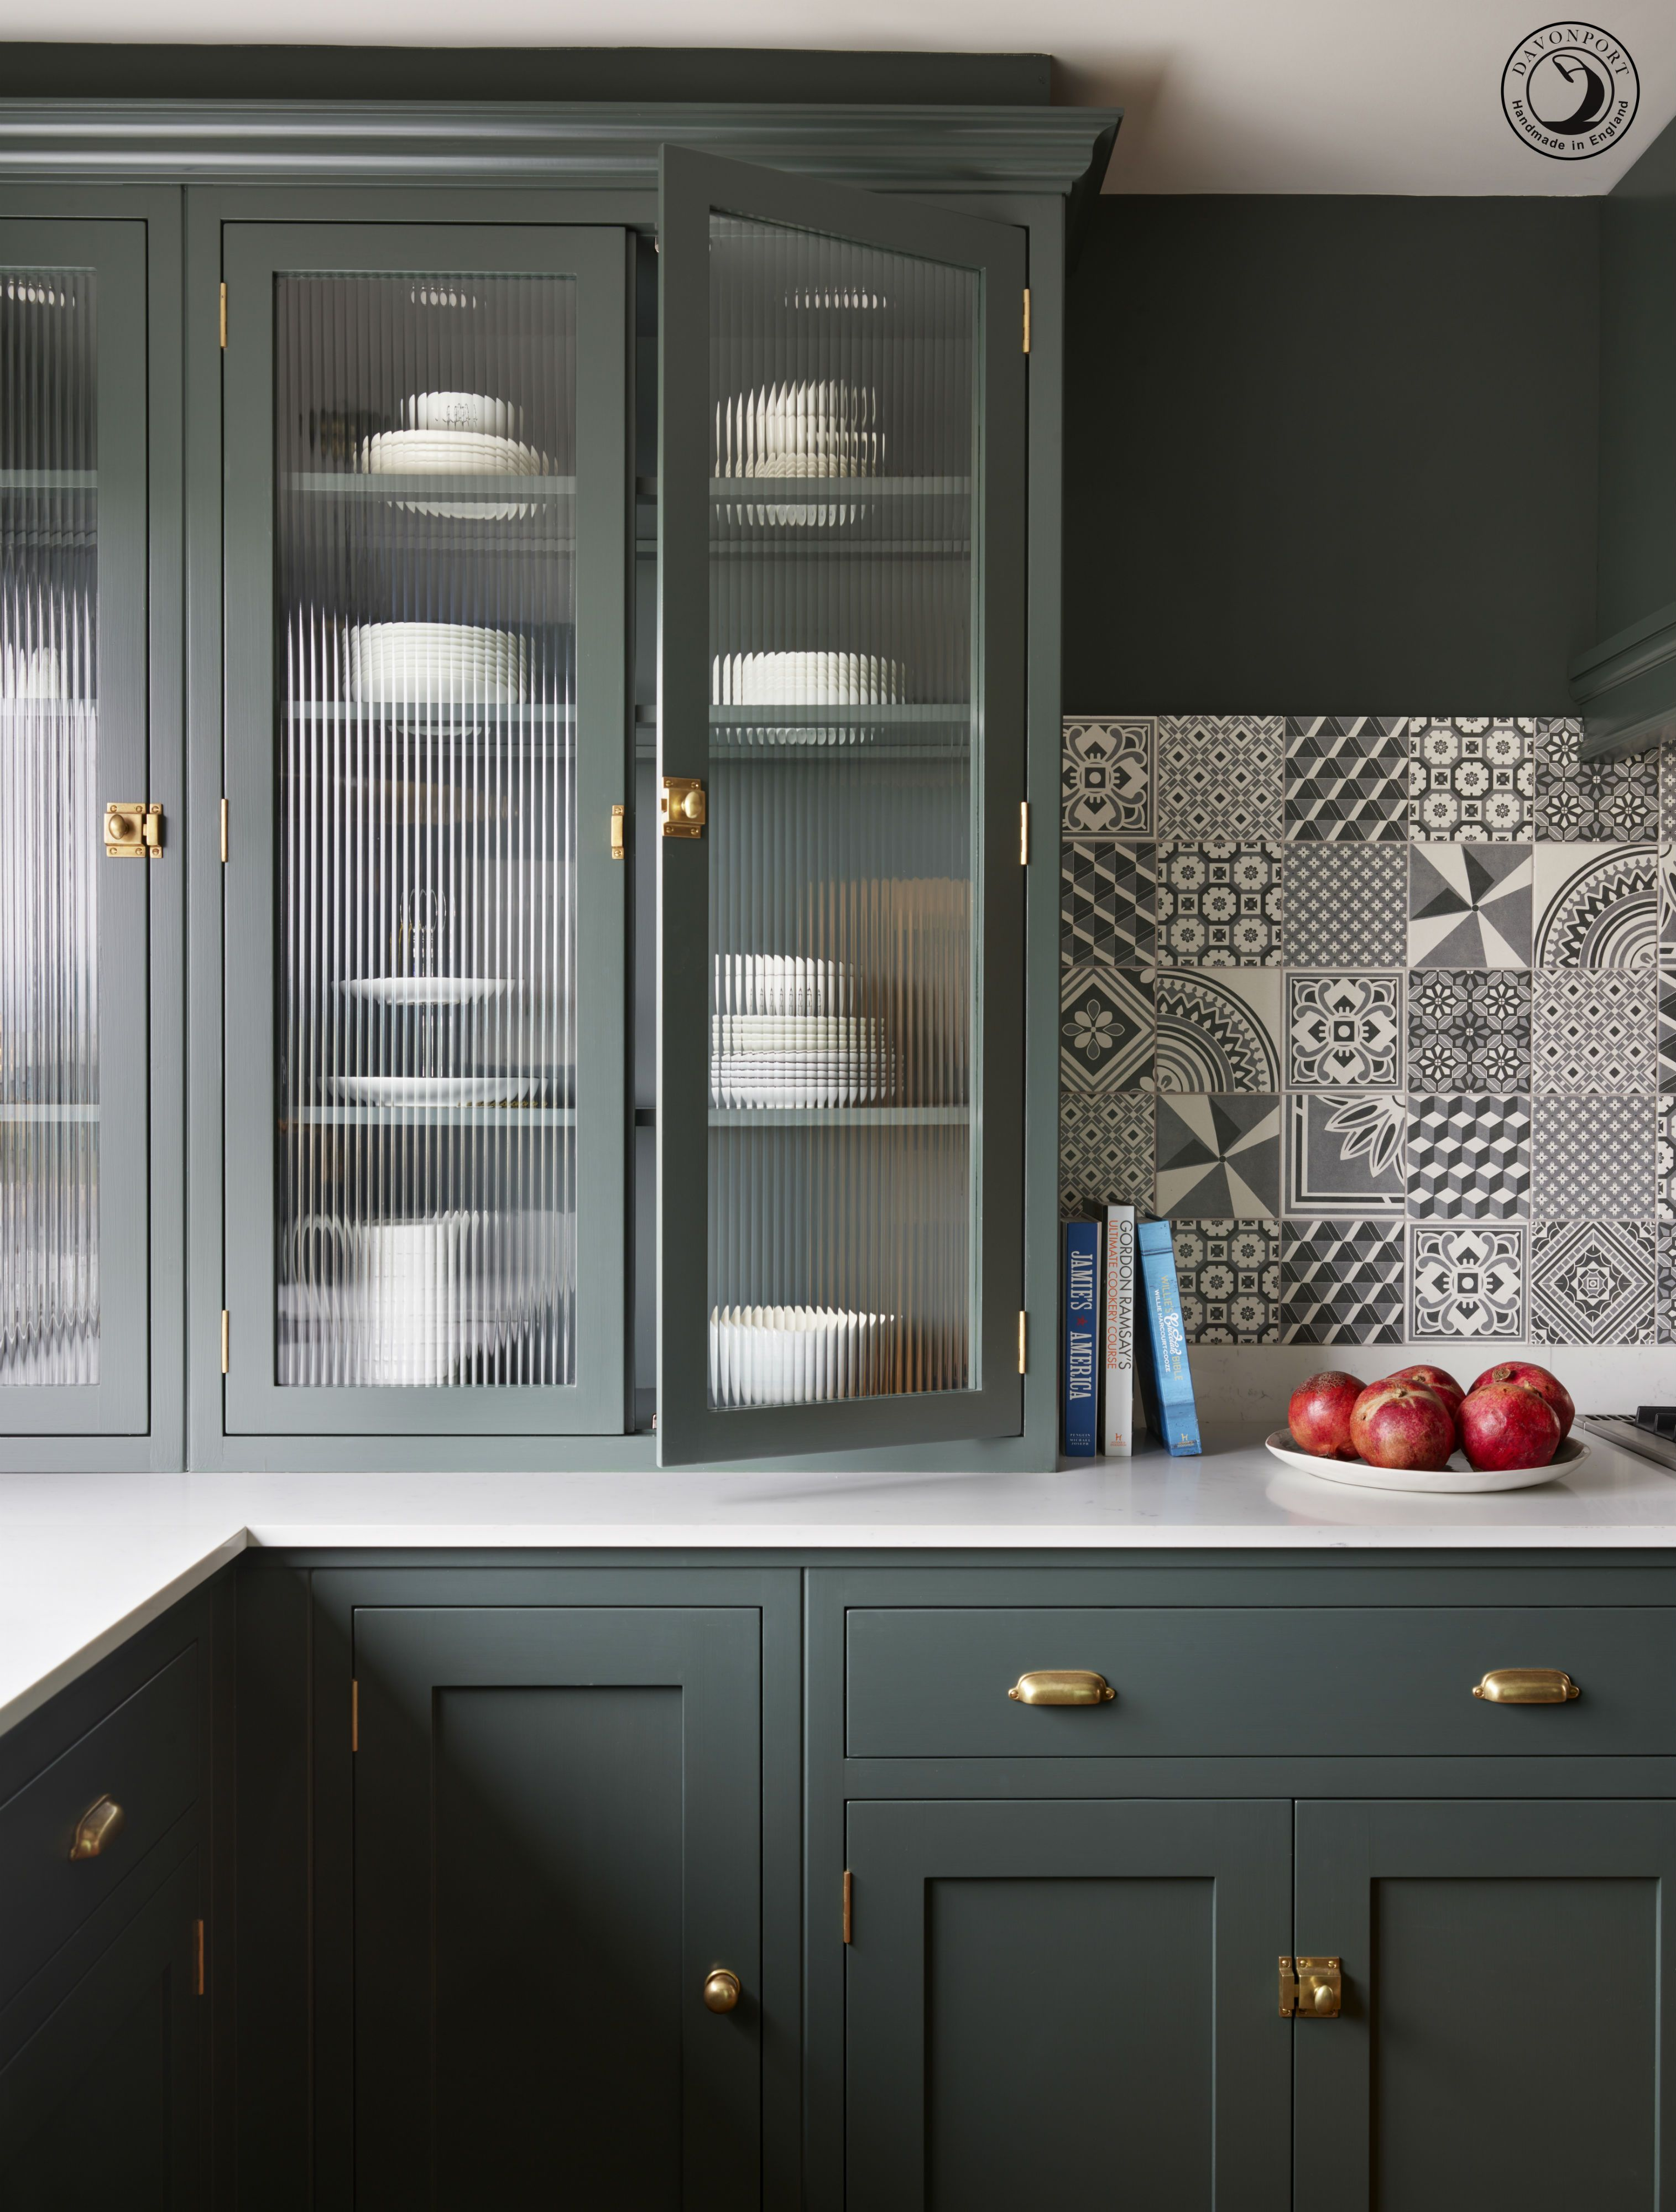 The Countertop Cupboards With Fluted Glass And On Trend Brass Catches Are The Perfect Place Green Kitchen Cabinets Urban Kitchen Design Glass Kitchen Cabinets